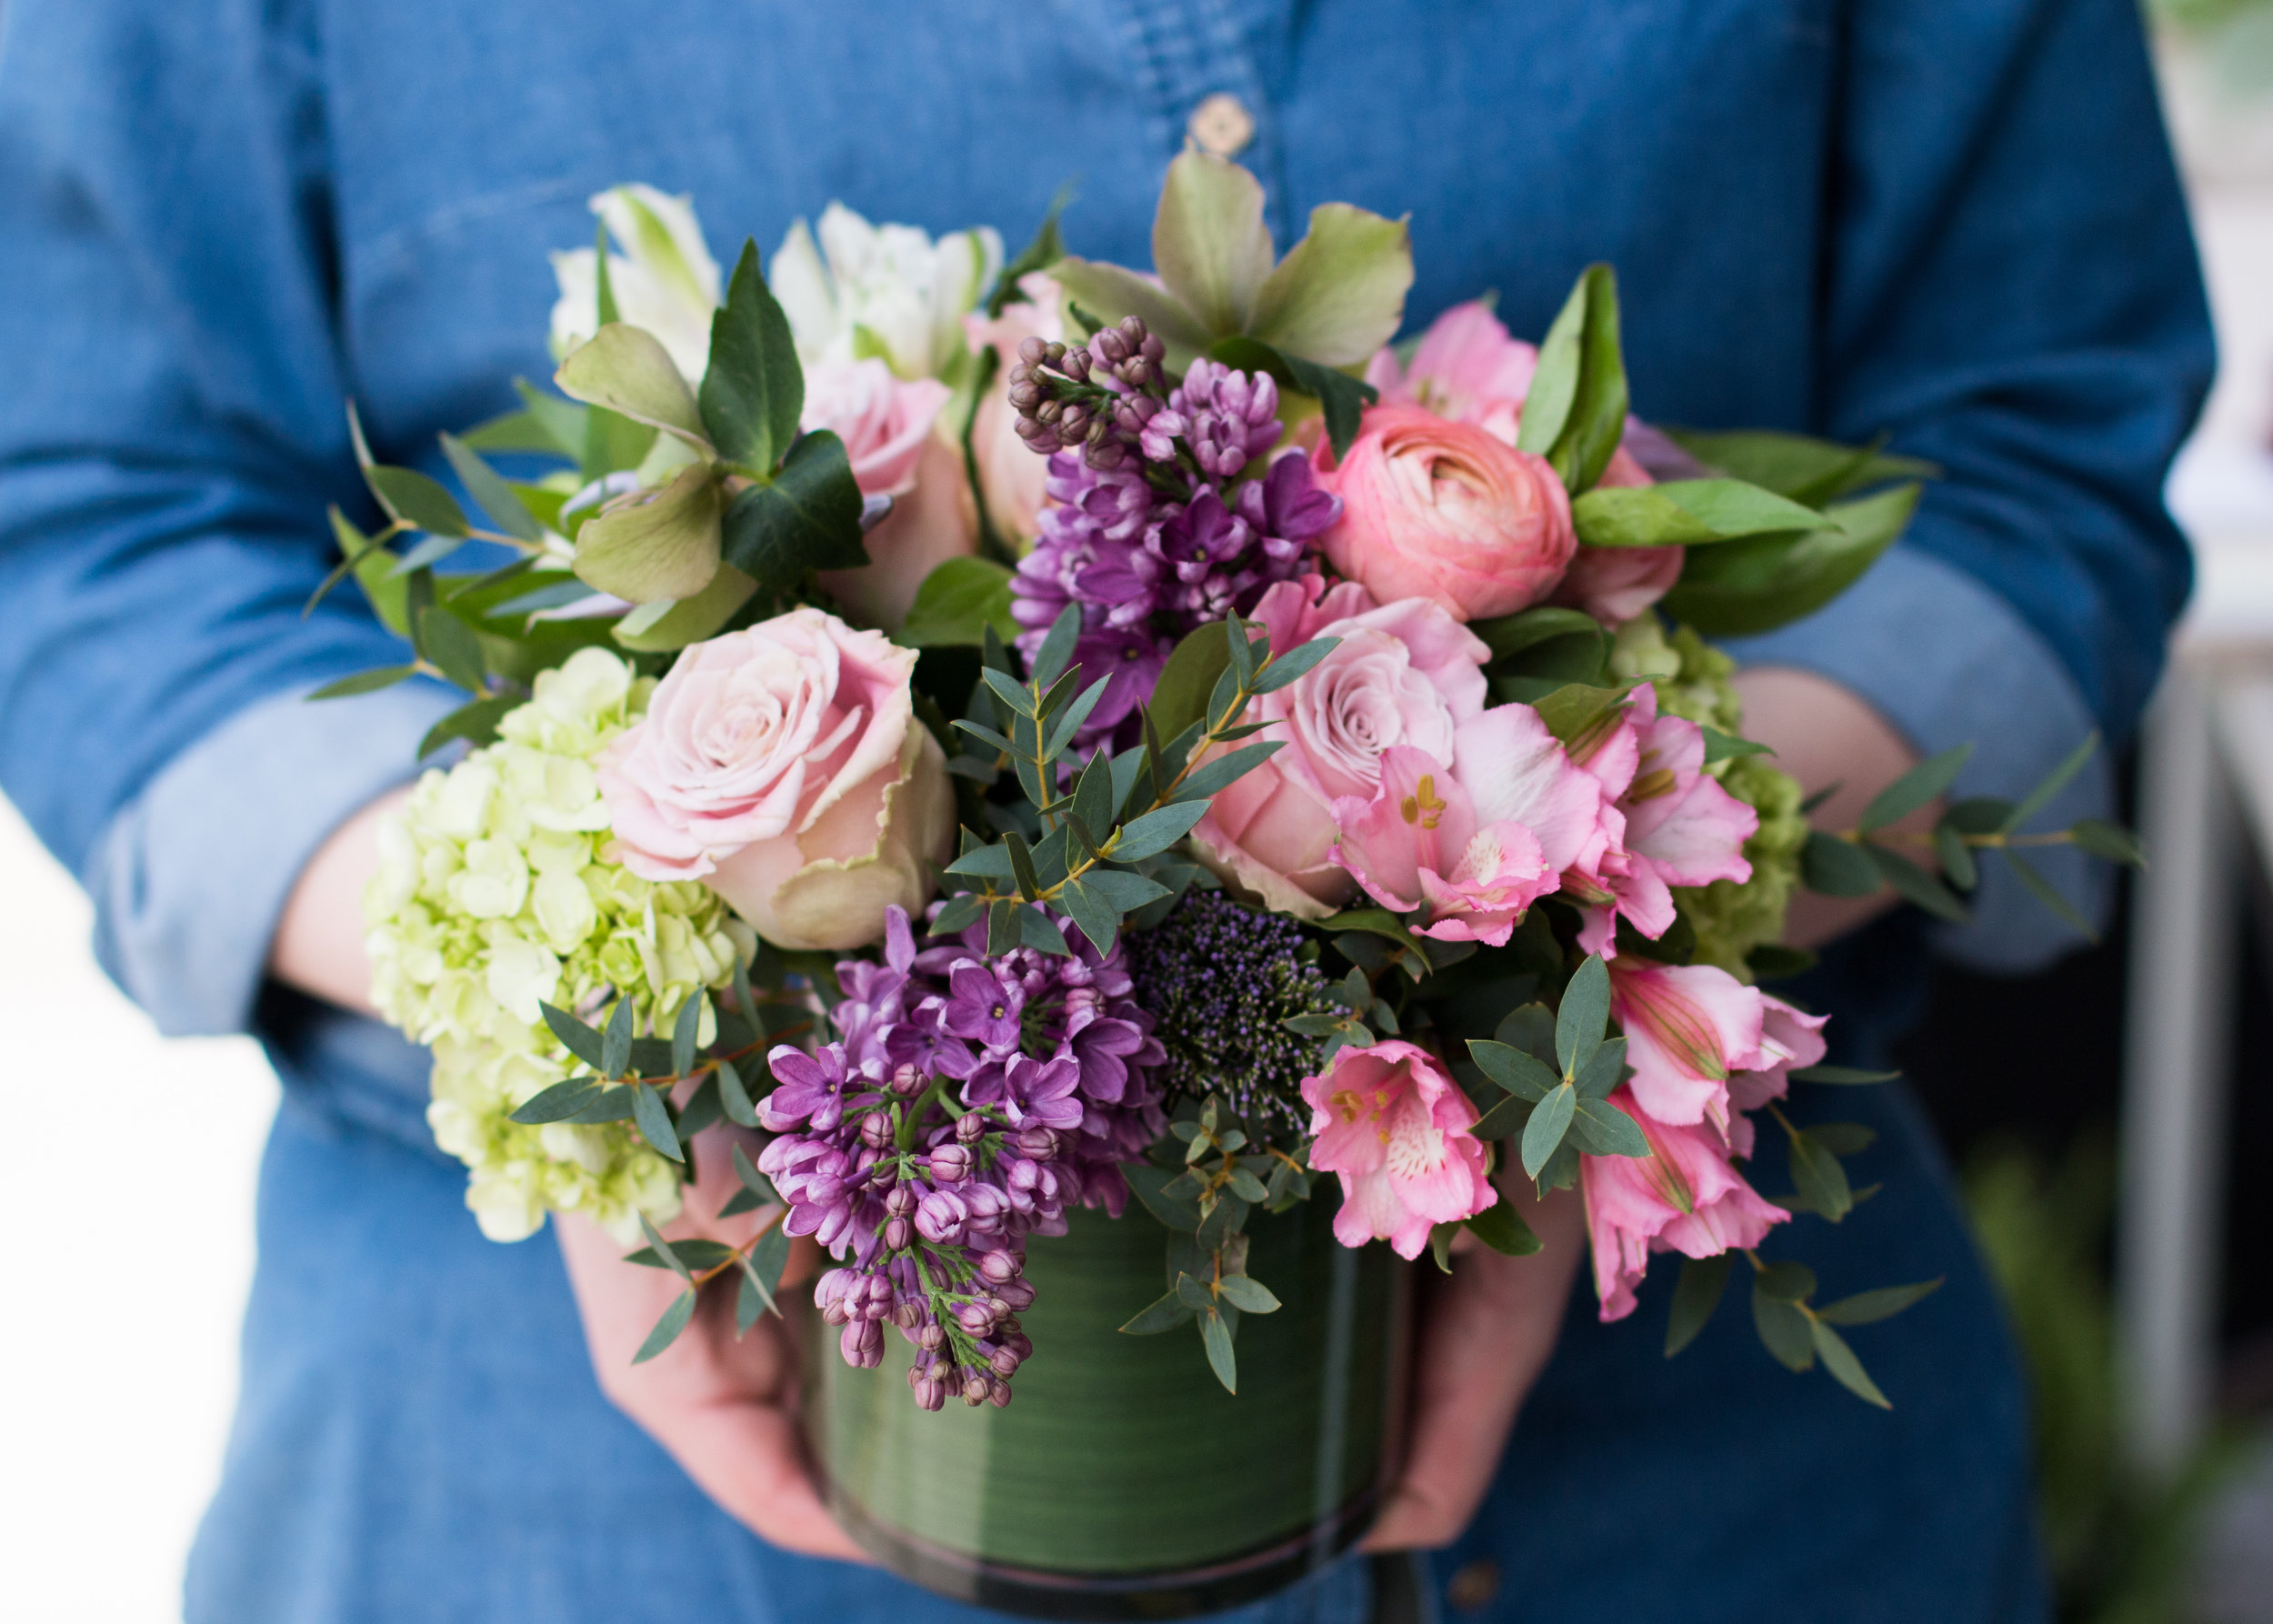 Fresh flowers for the ultimate gift everyone loves. Mention this post to receive a complimentary  $10  upgrade to your custom fresh flower orders for easter weekend.